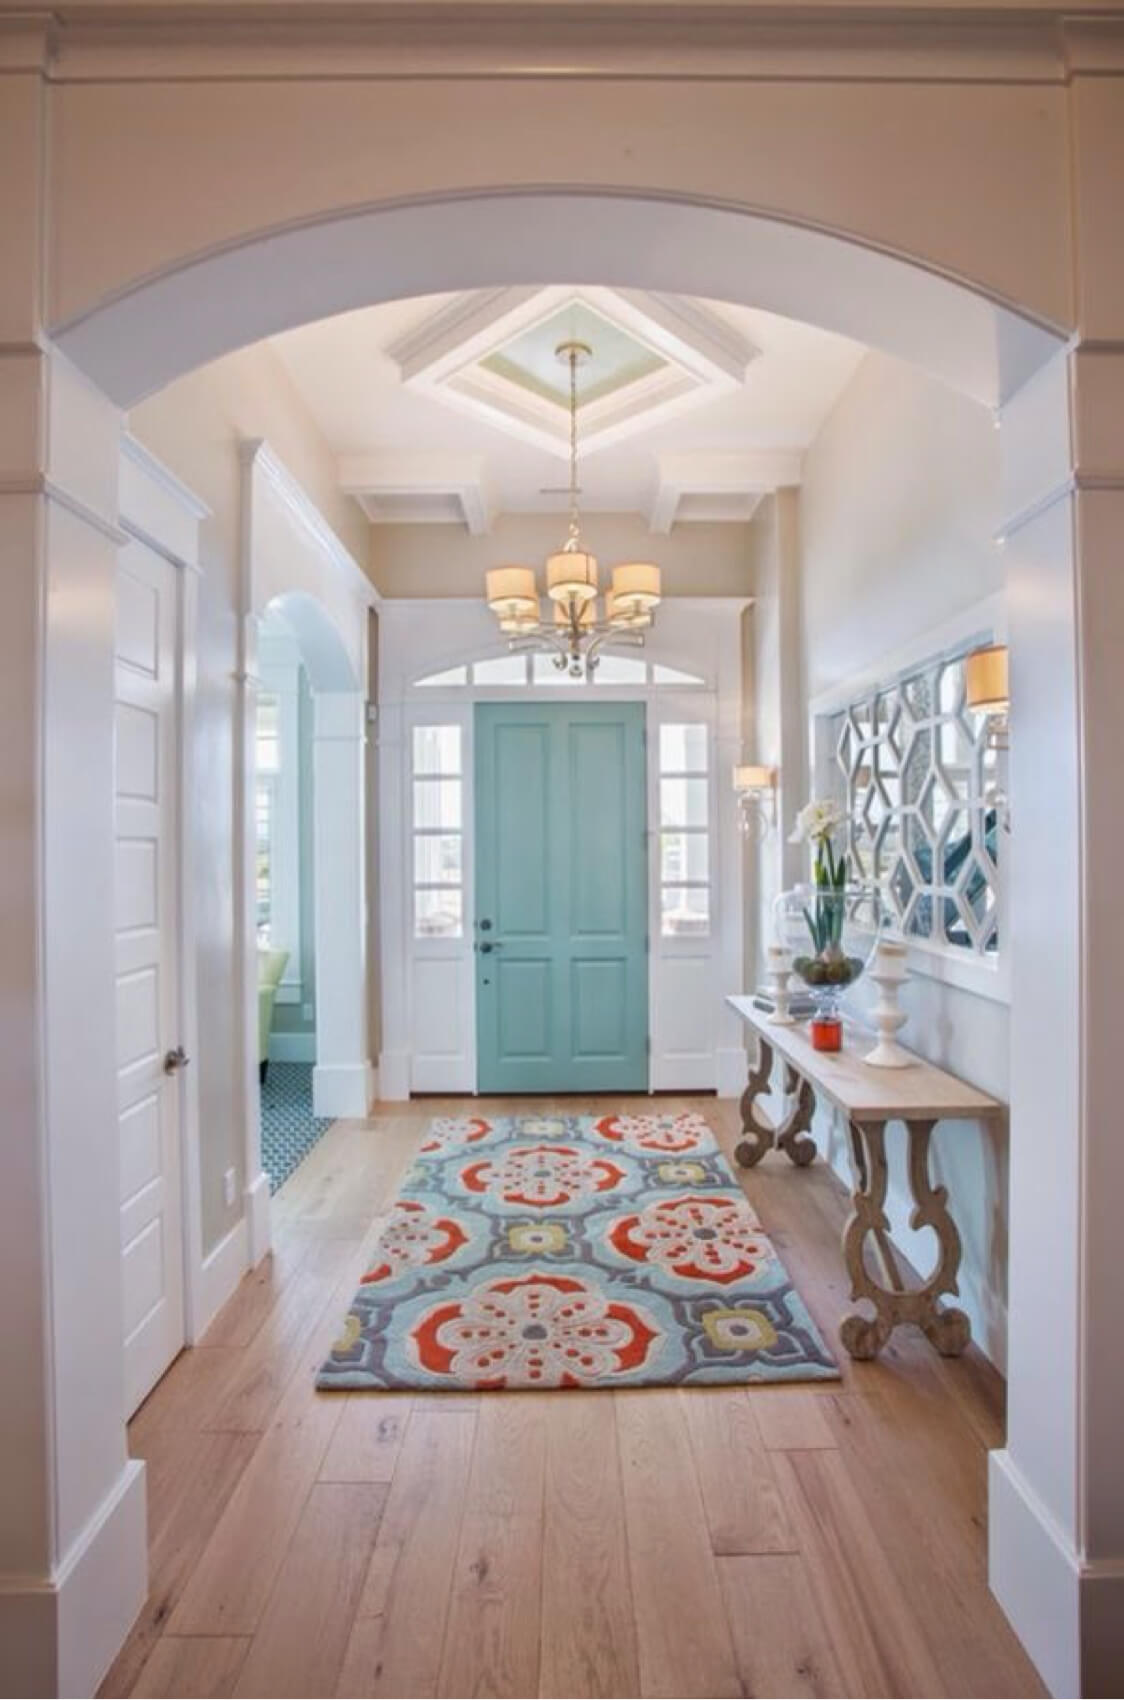 A Bright Rug Adds Interest